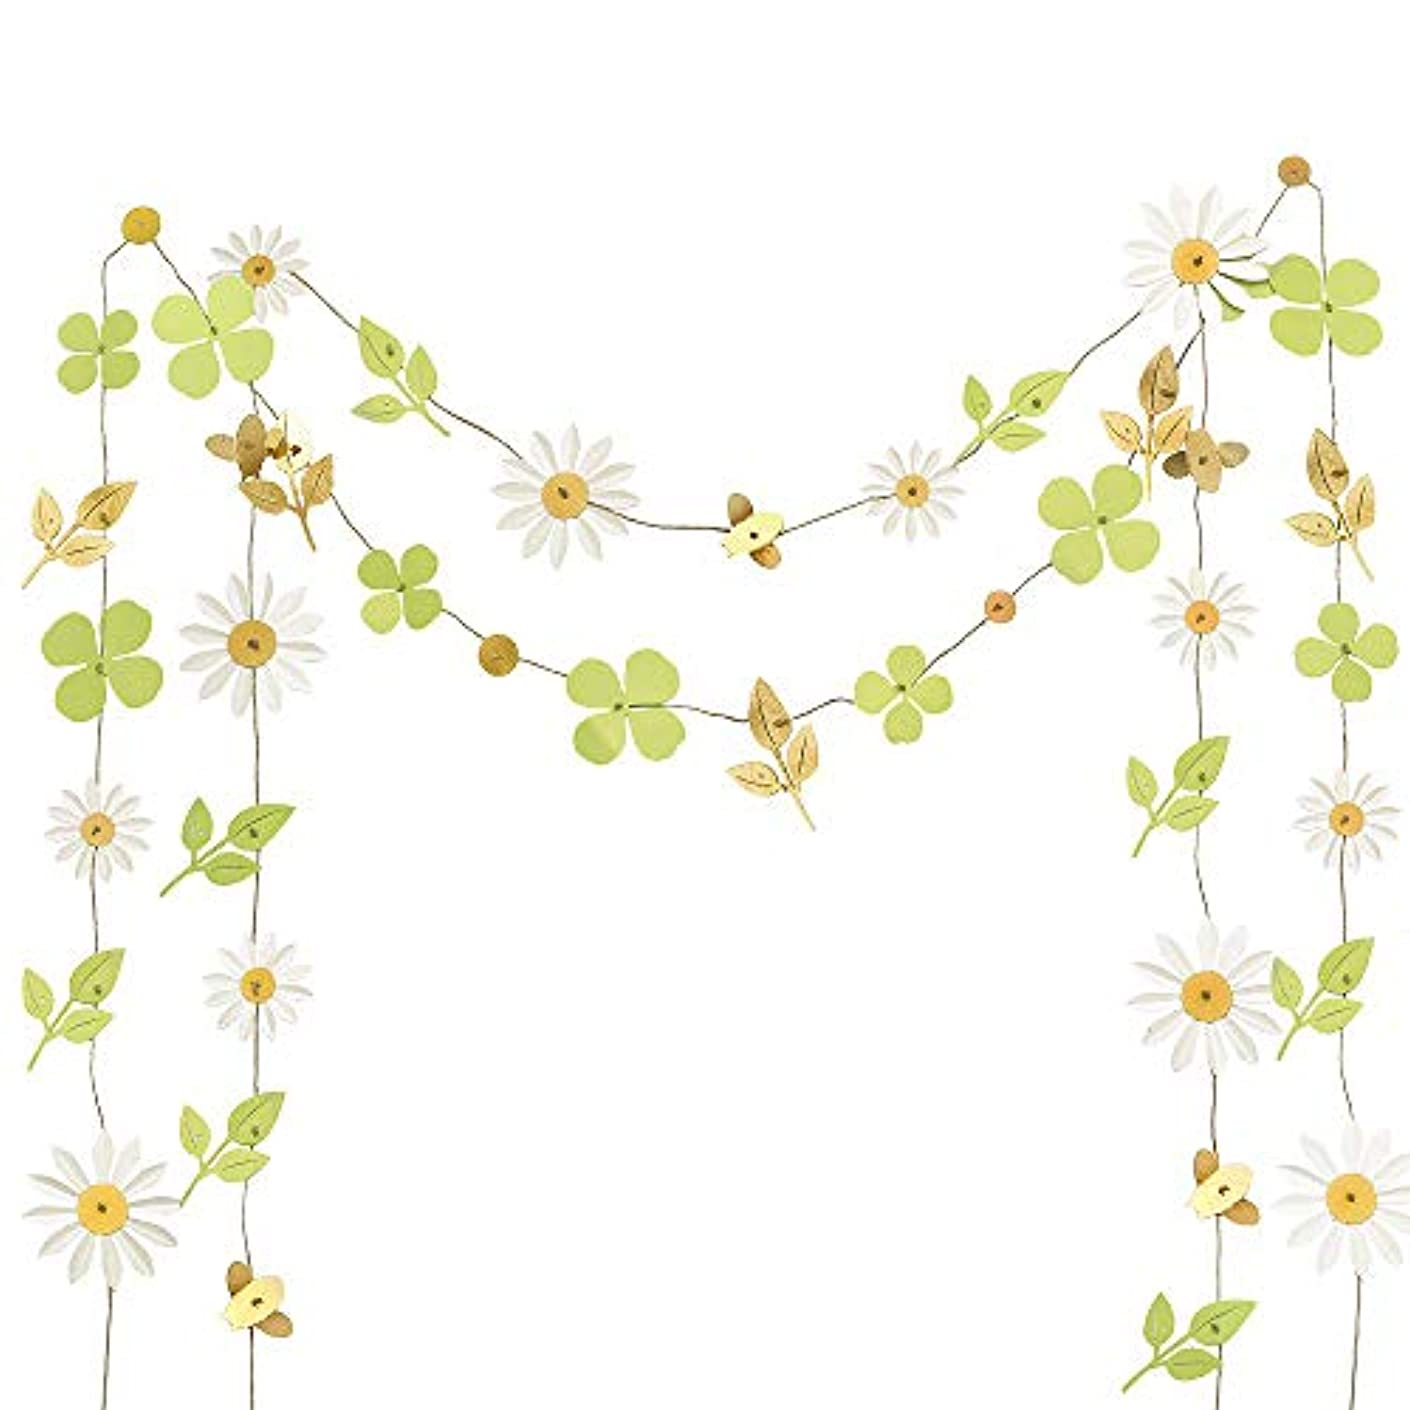 Ling's moment 13FT Paper Lucky Clover Daisy Leaves Bee Banner, Set of 2, Handmade Banner, Hanging Flower Backdrop Garland for Baby Nursery Bridal Shower Birthday Party Backdrop Wedding Dorm Room